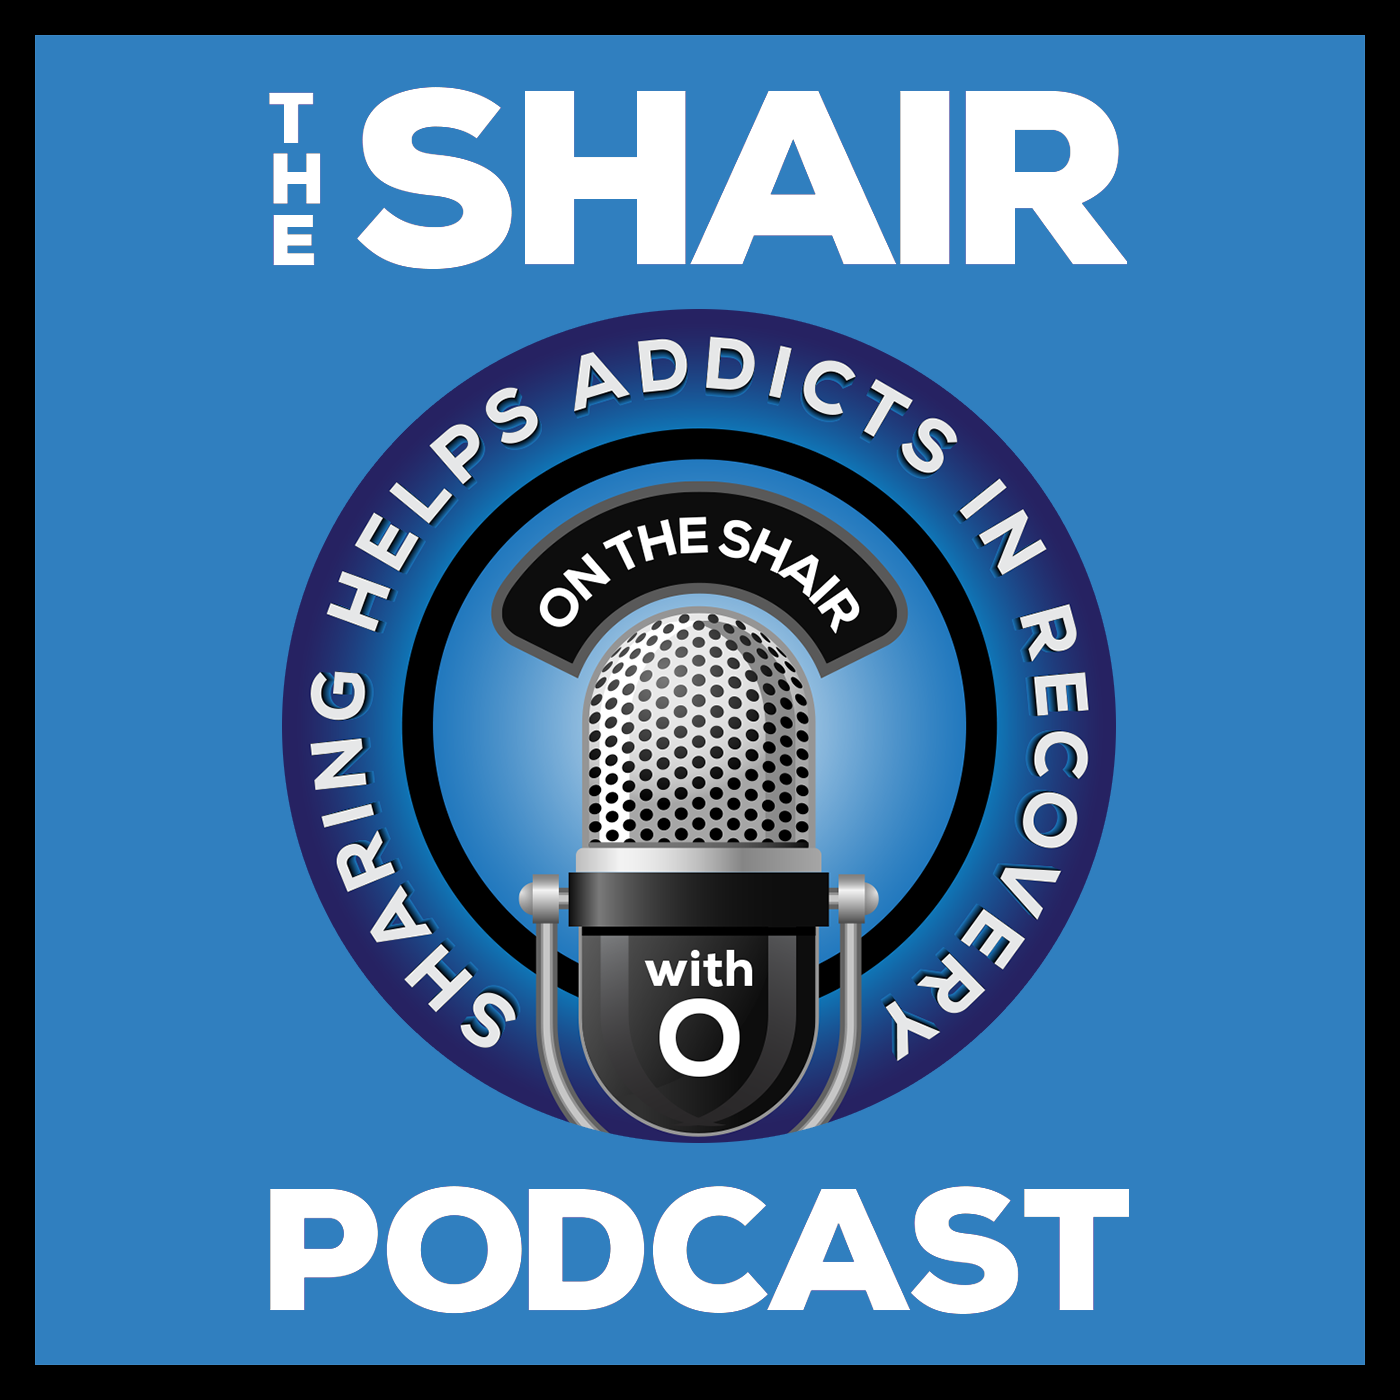 the-shair-podcast-itunes.png